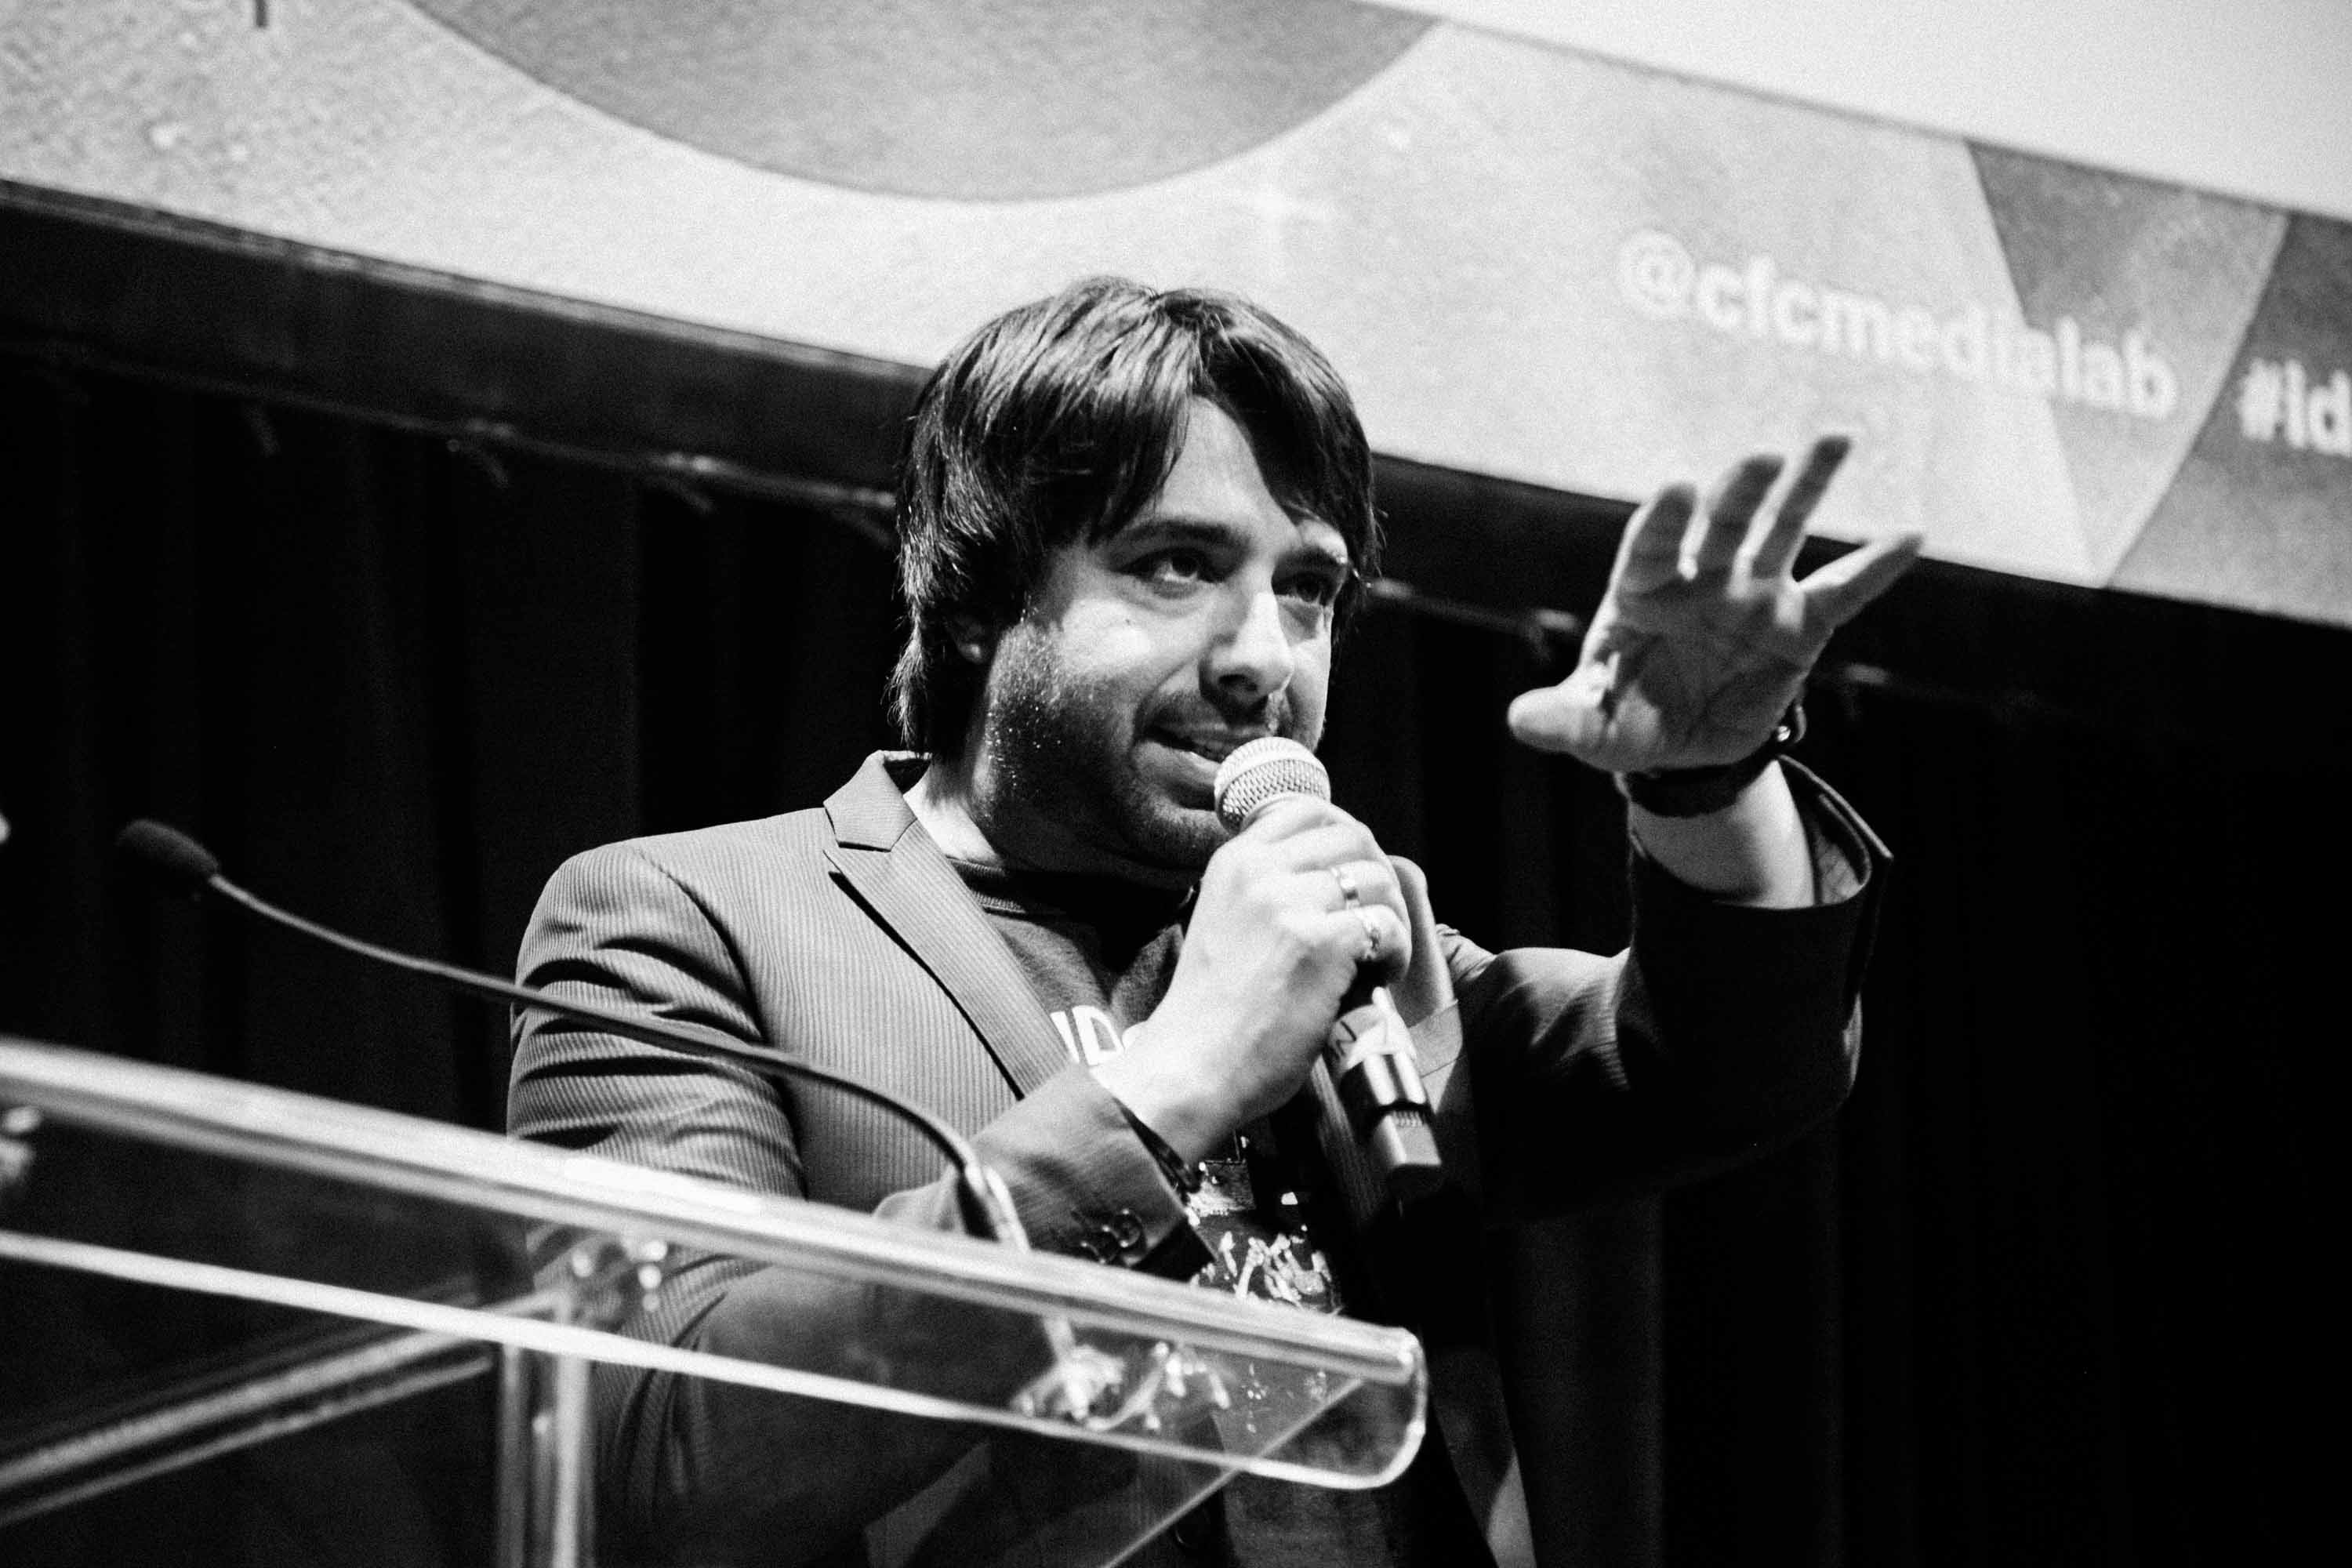 Much more change seen as needed at CBC in Jian Ghomeshi's wake